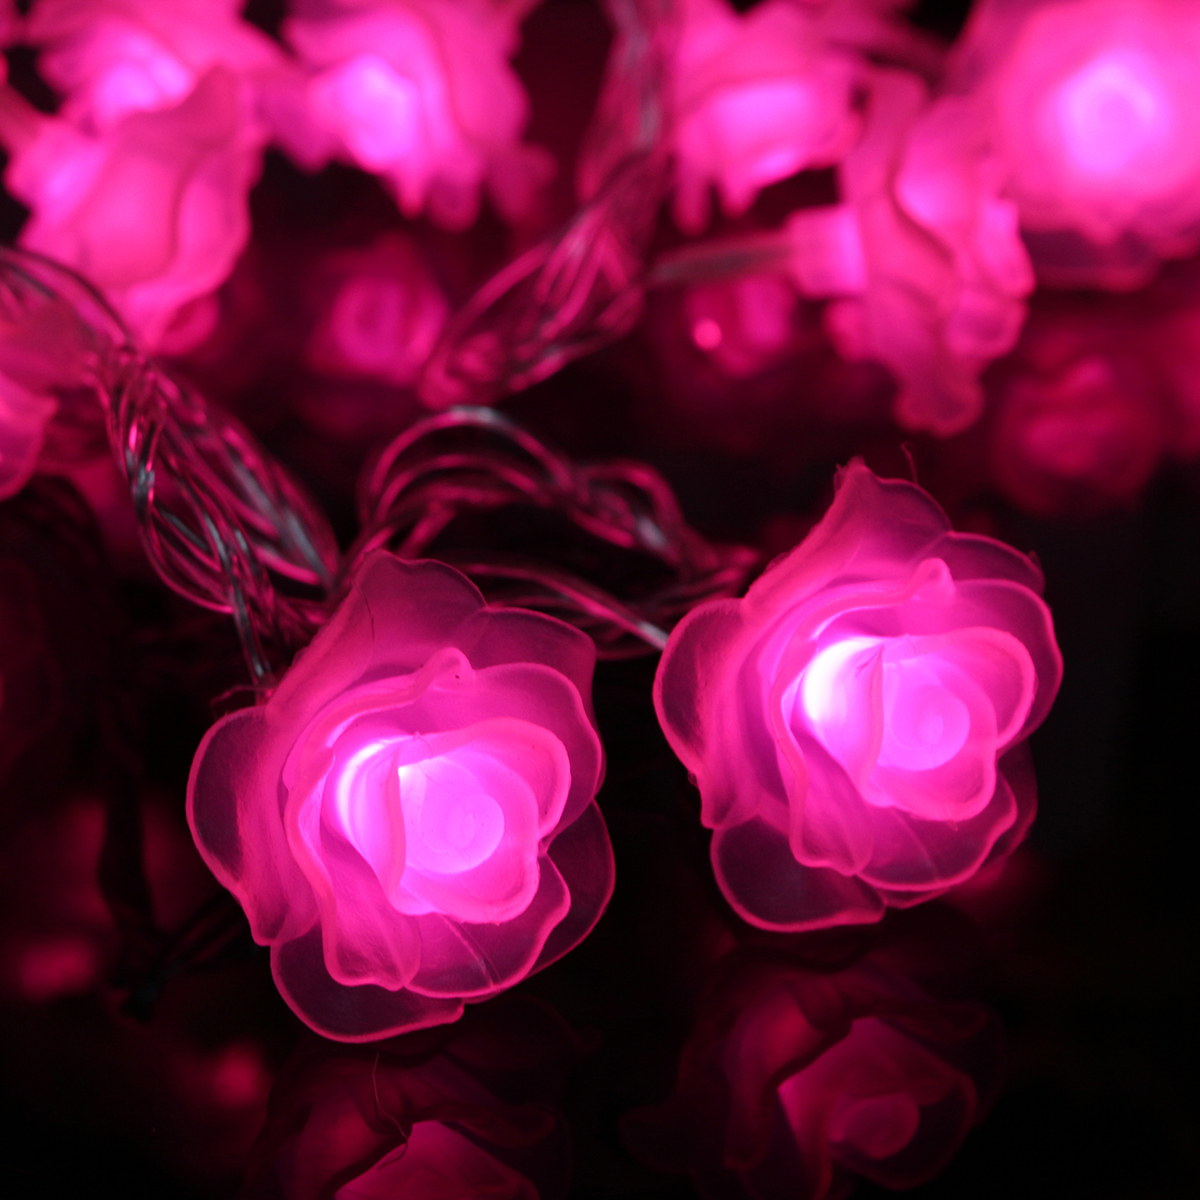 10M 100LEDs 8 Modes Pink White Rose Flower Fairy String Light for Christmas Patio AC220V